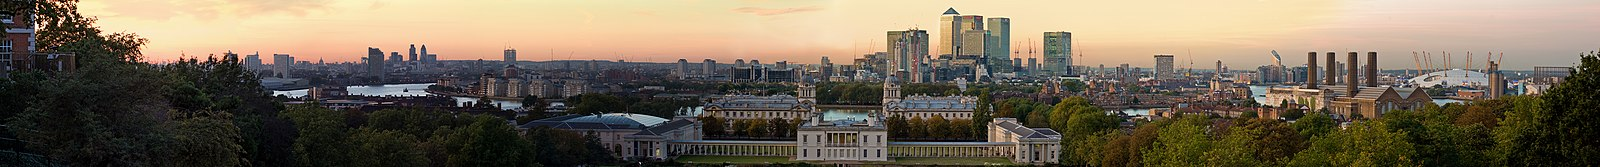 The view from Greenwich Park, with the Queen's House and the wings of the National Maritime Museum in the foreground